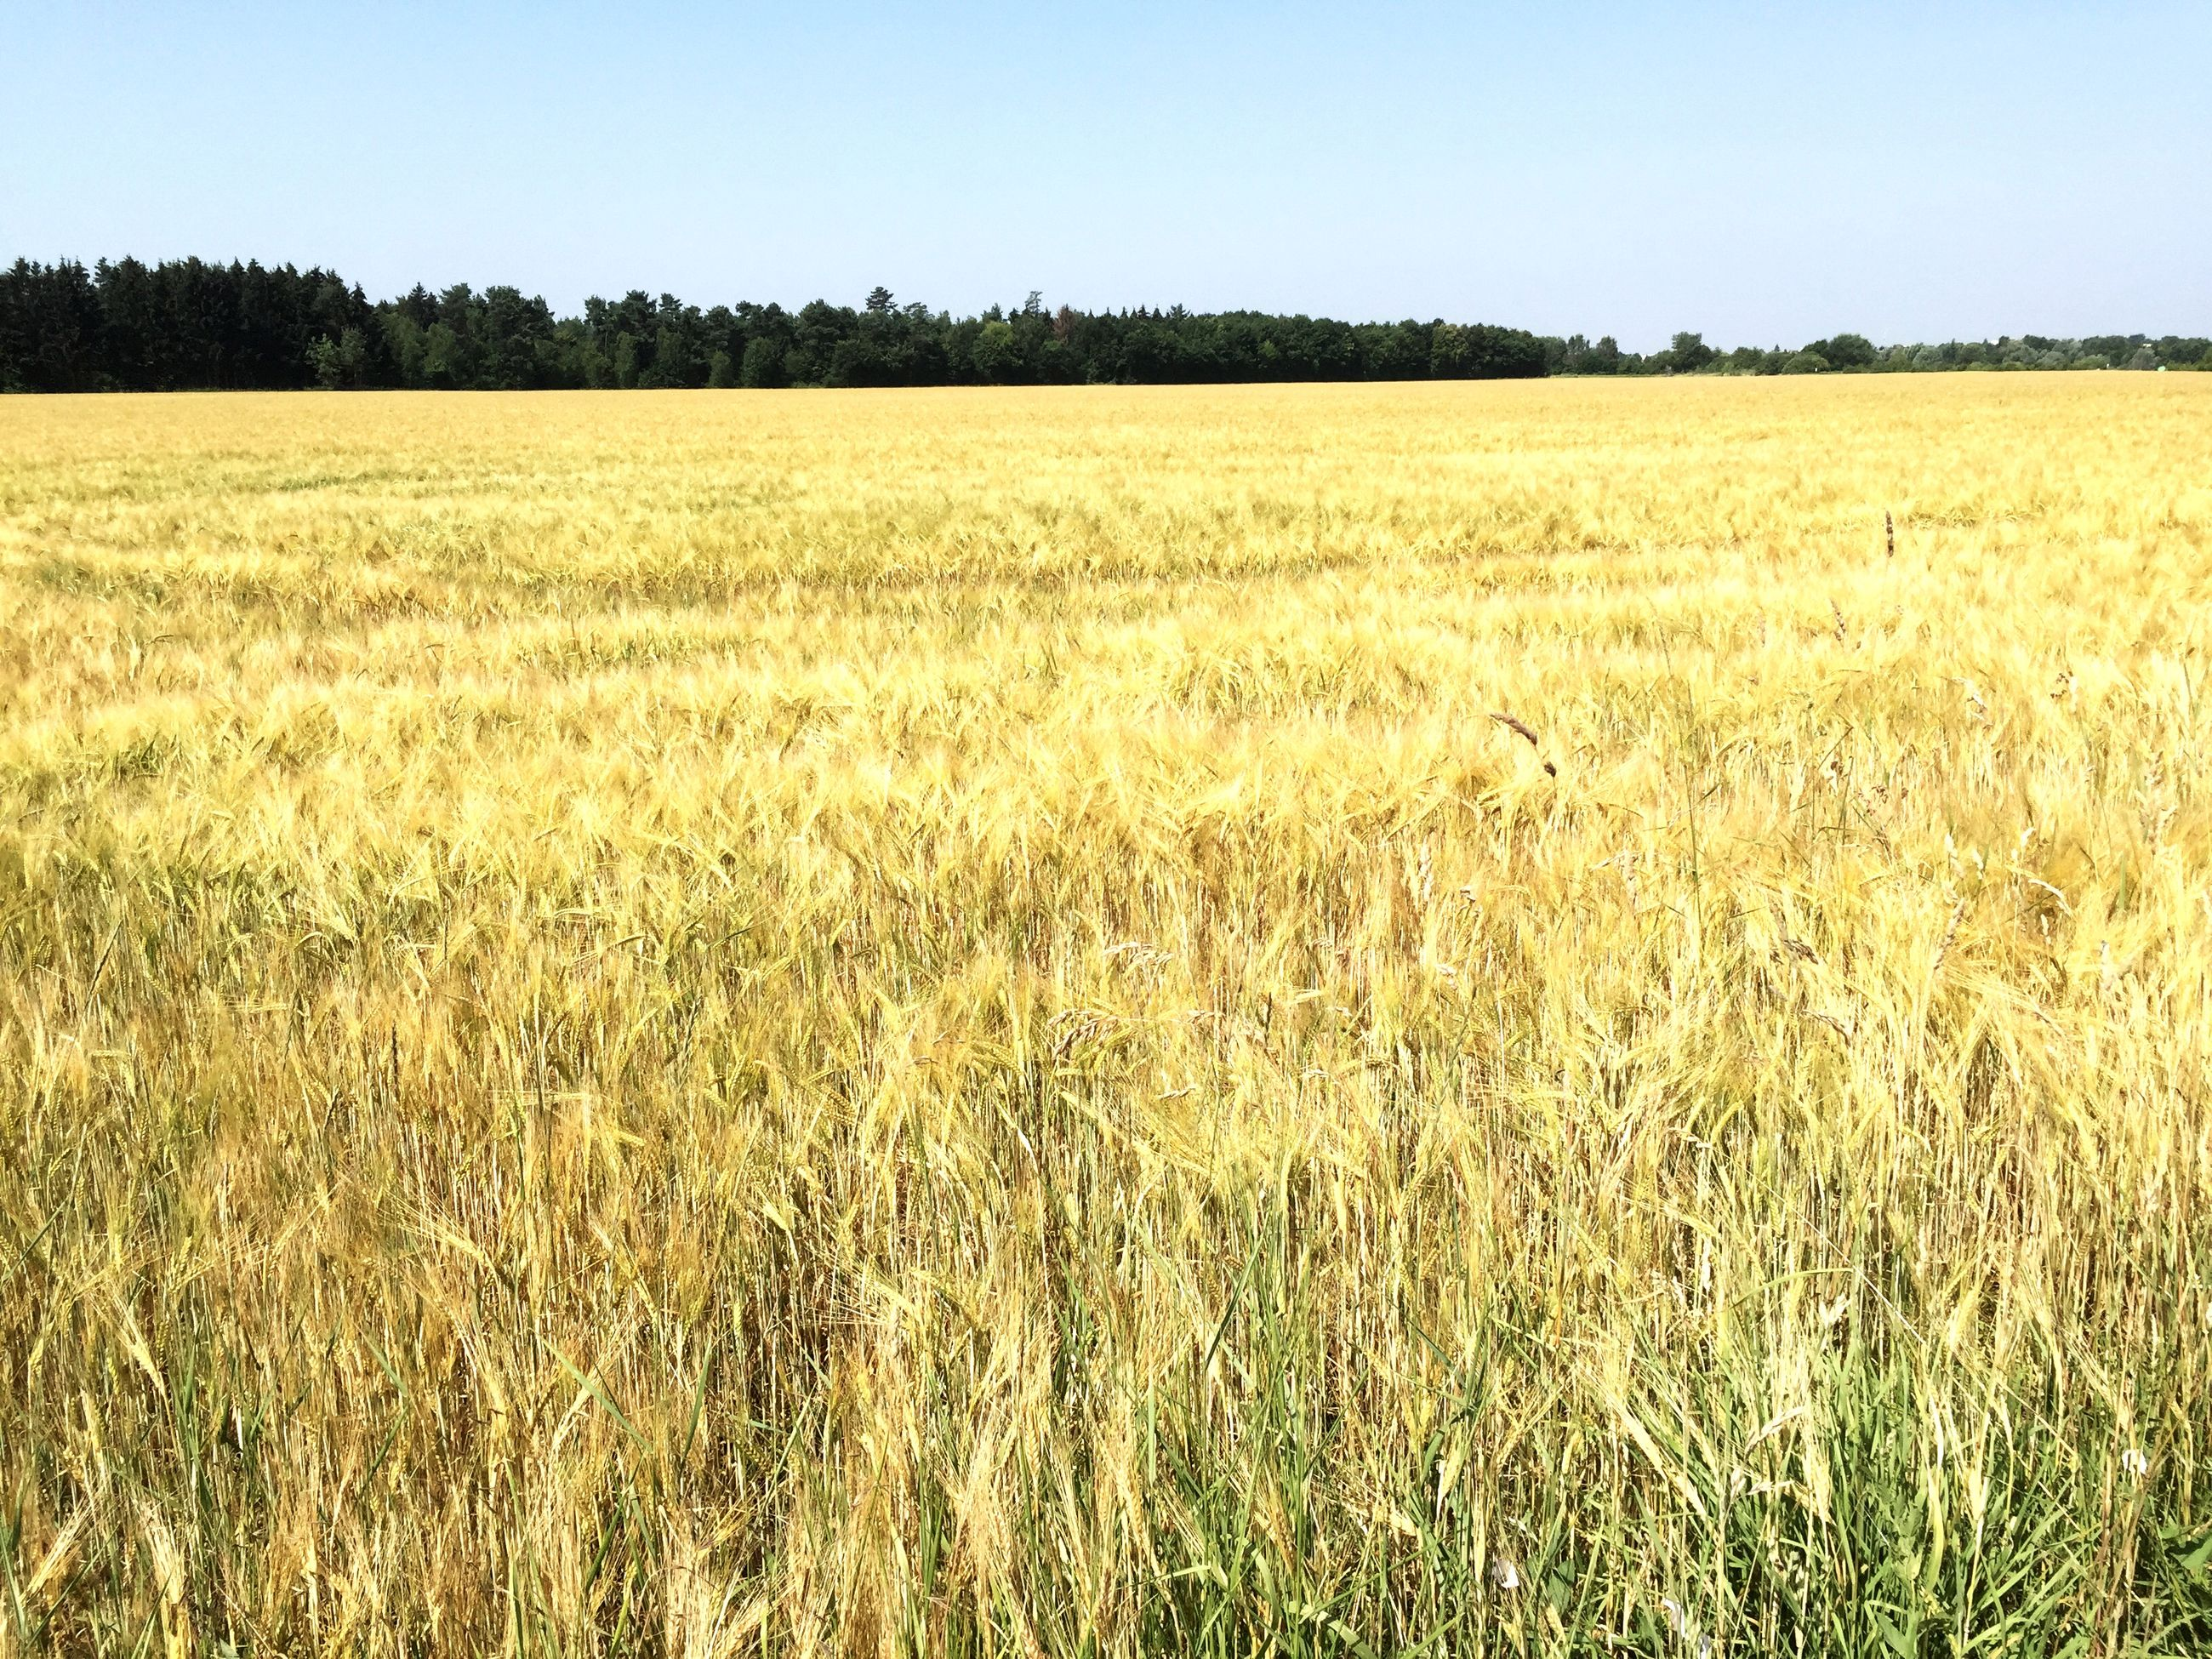 field, agriculture, rural scene, landscape, tranquility, crop, tranquil scene, farm, growth, clear sky, beauty in nature, nature, scenics, cereal plant, grass, cultivated land, wheat, plant, copy space, farmland